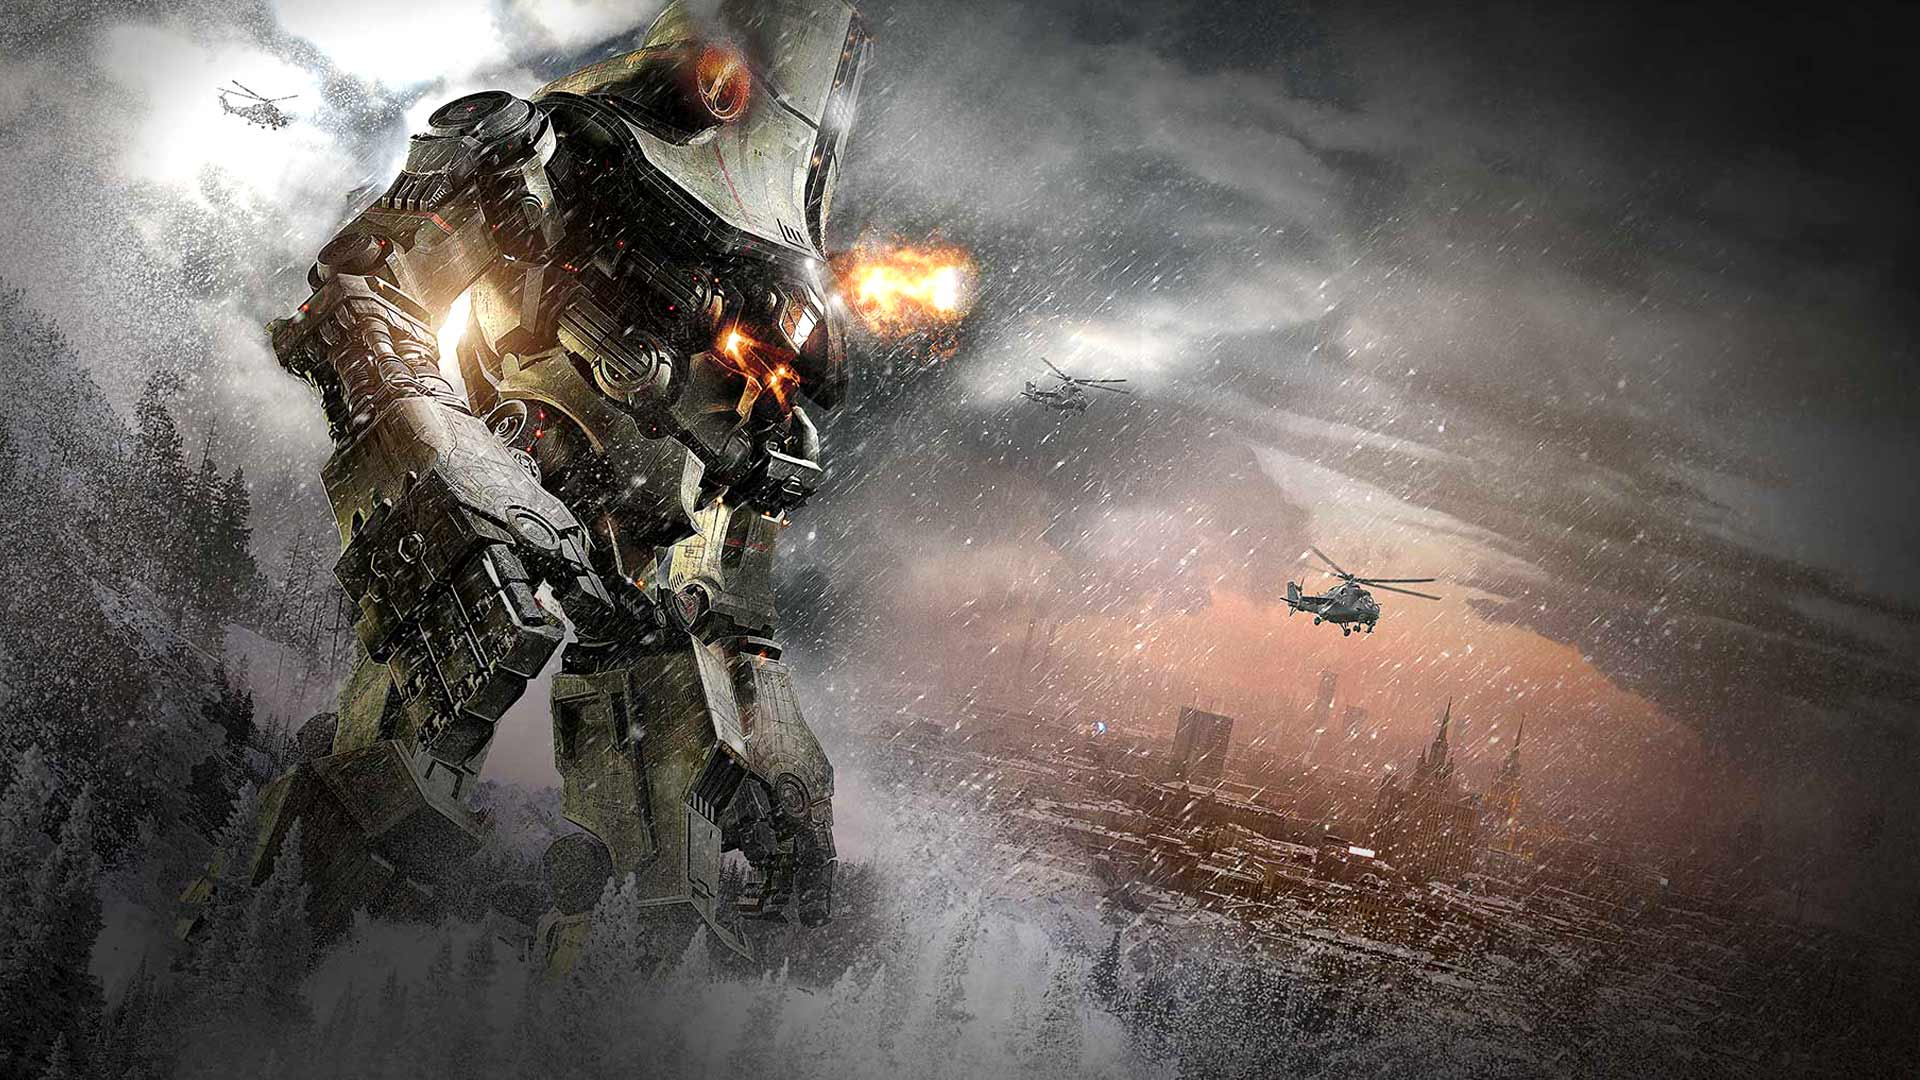 wallpapers movie wallpapers free pacific rim free movie wallpapers hd1 1920x1080